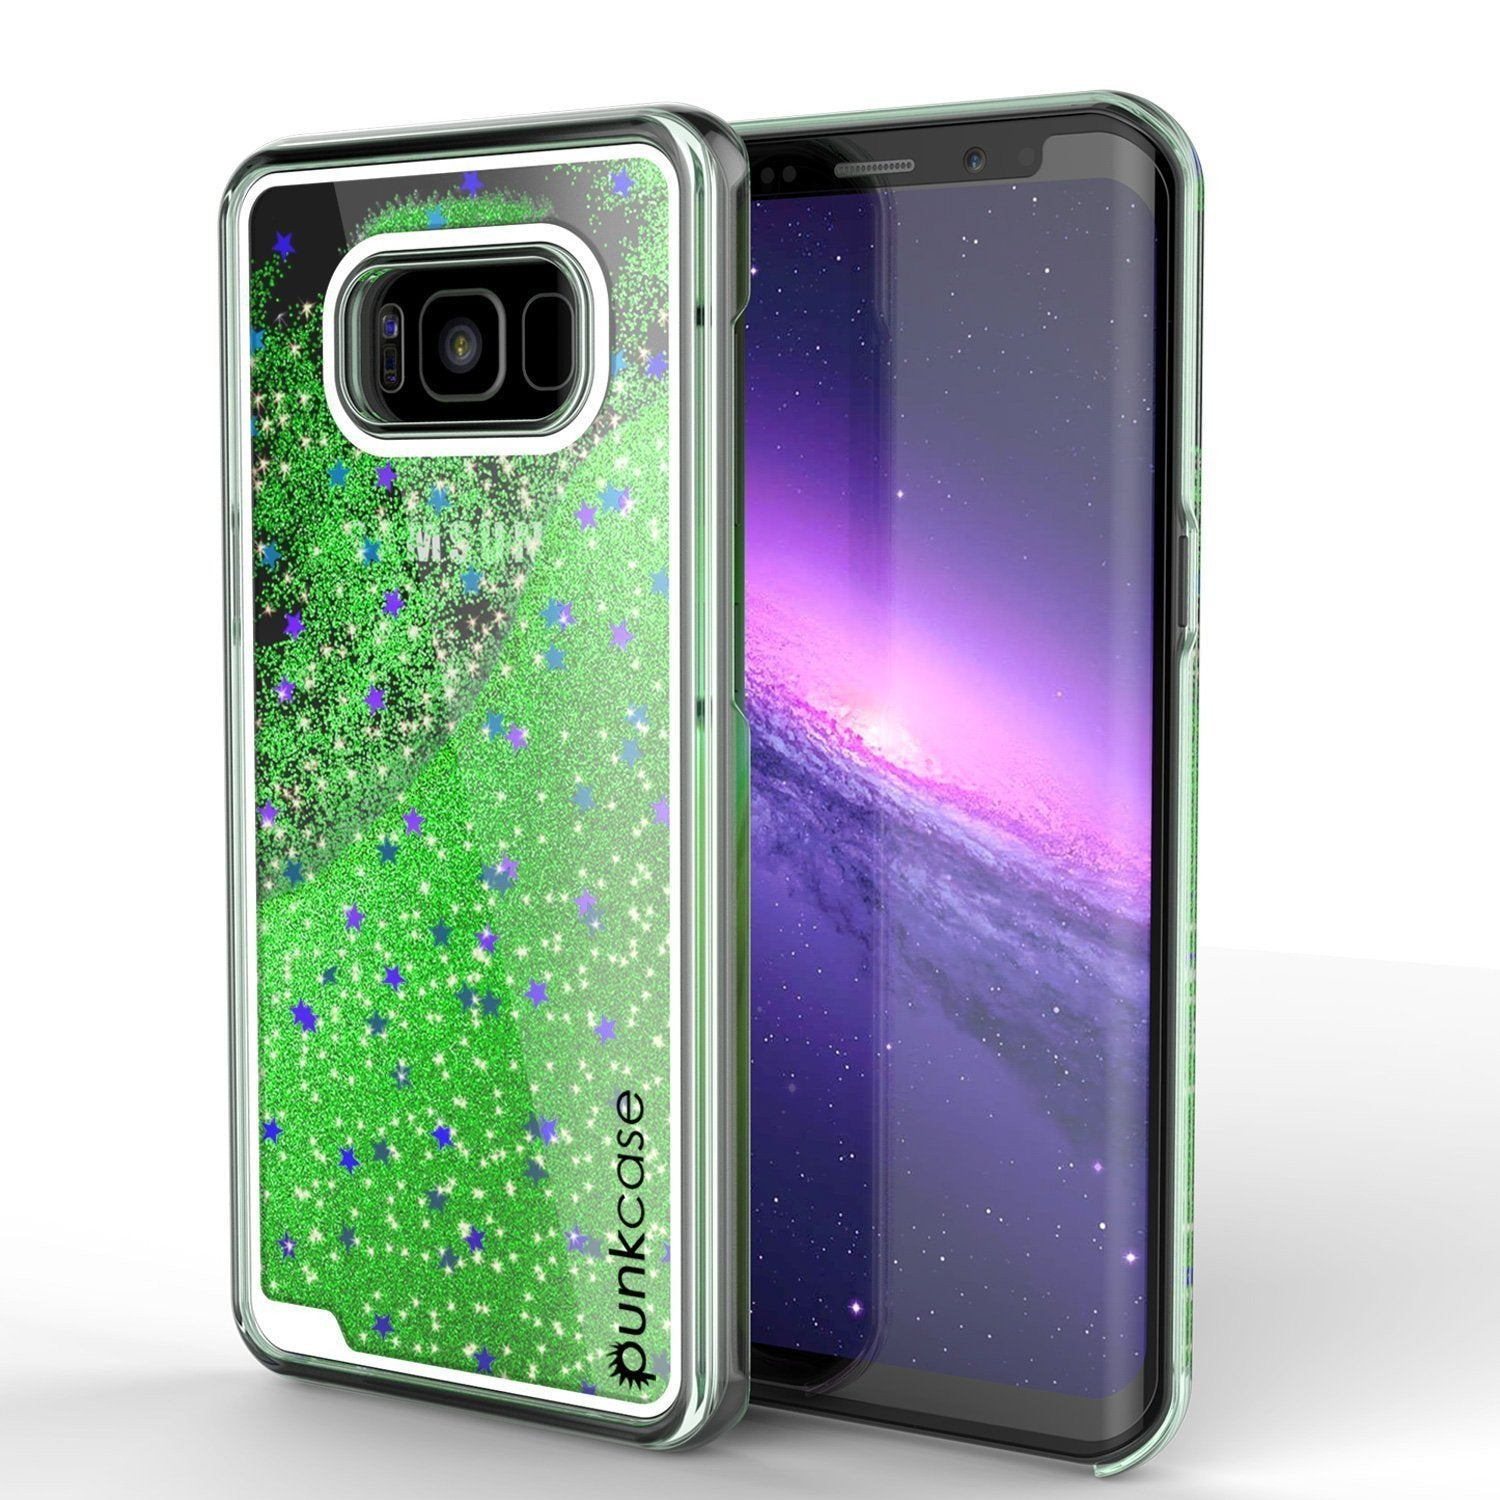 Galaxy S8 Case, Punkcase [Liquid Series] Protective Dual Layer Floating Glitter Cover with lots of Bling & Sparkle + PunkShield Screen Protector for Samsung S8 [Green]